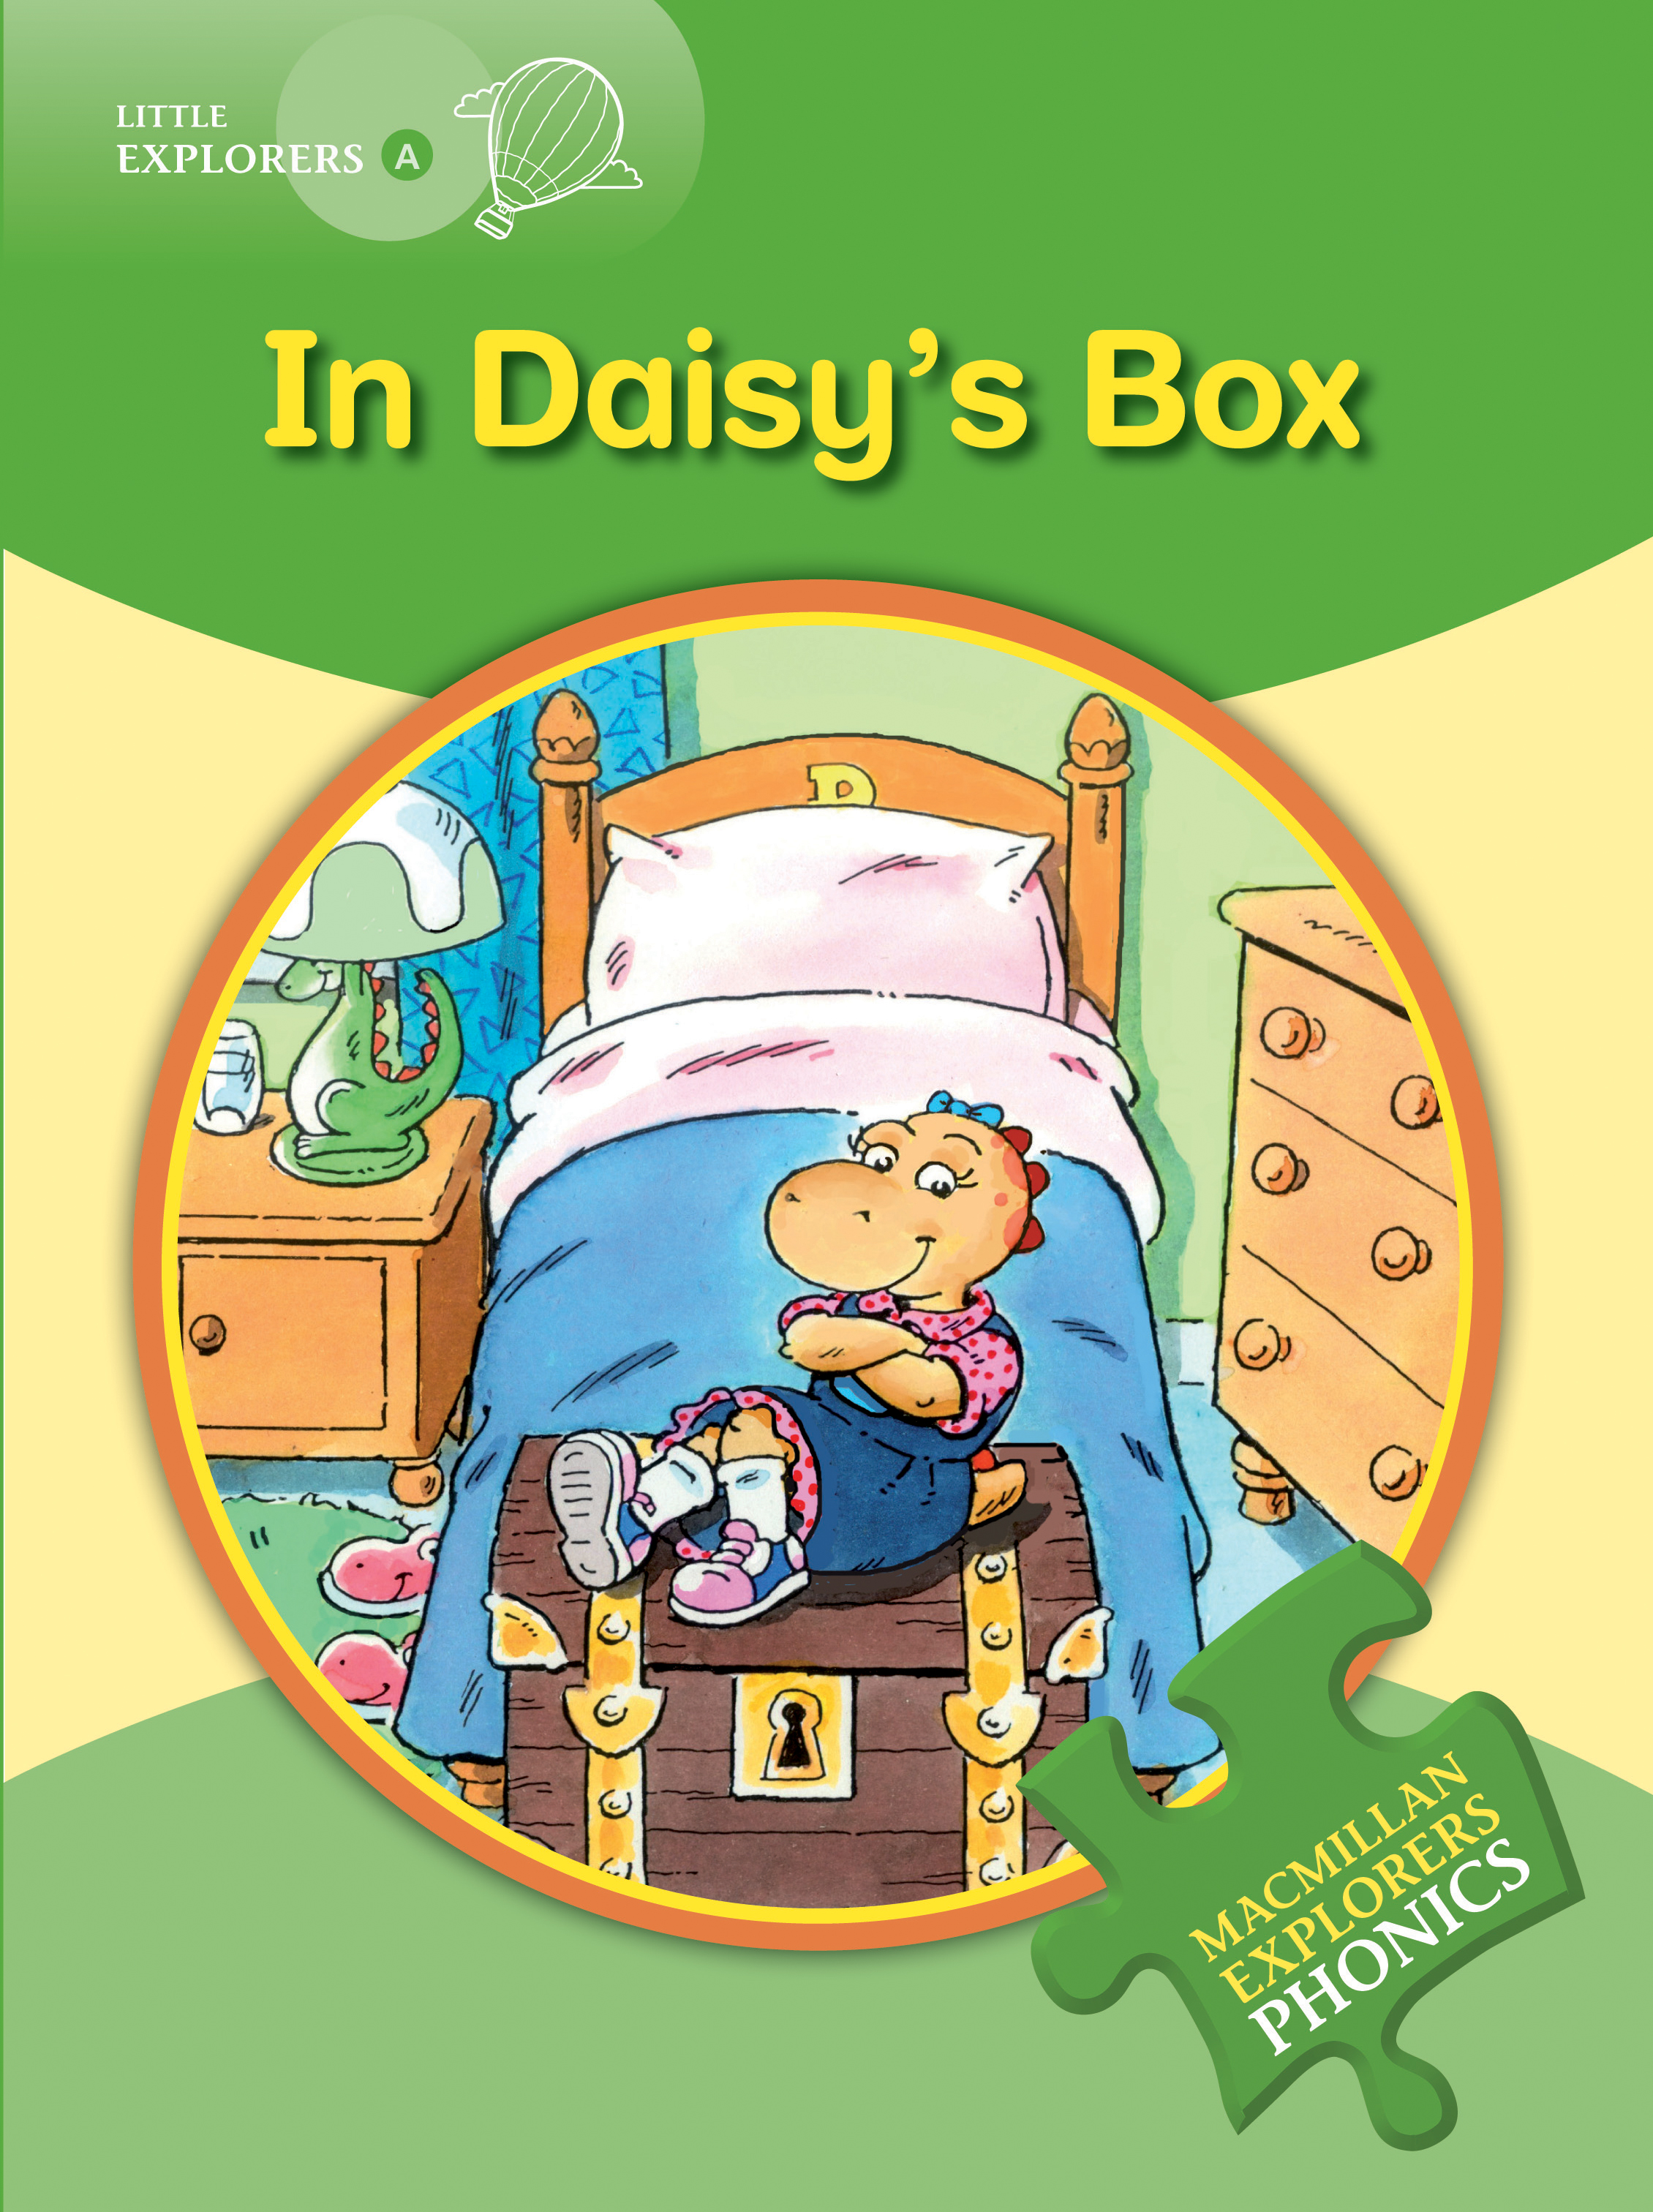 Little Explorers A: In Daisy